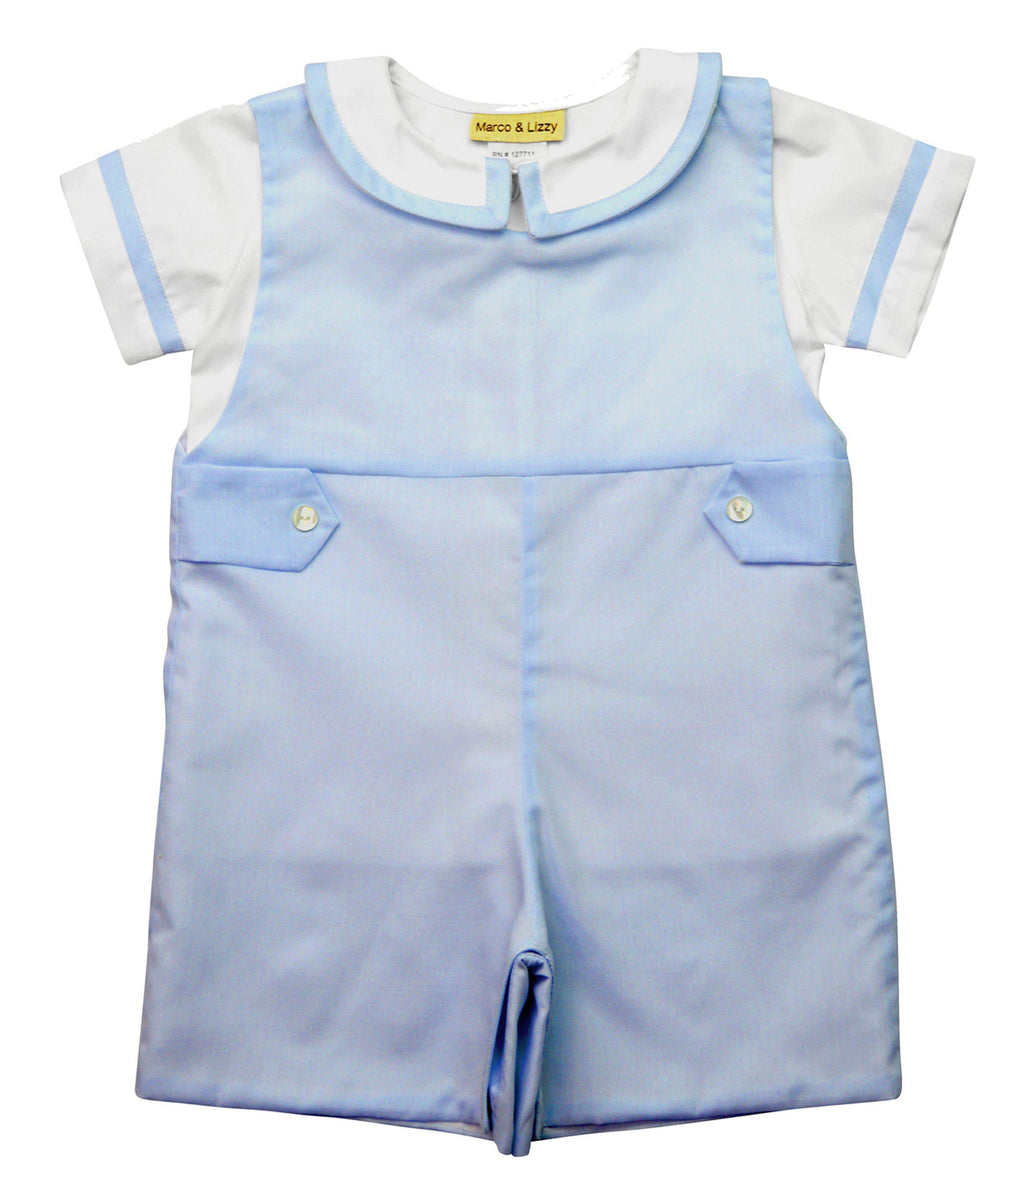 Marco & Lizzy Blue Overall Baby Set - Little Threads Inc. Children's Clothing